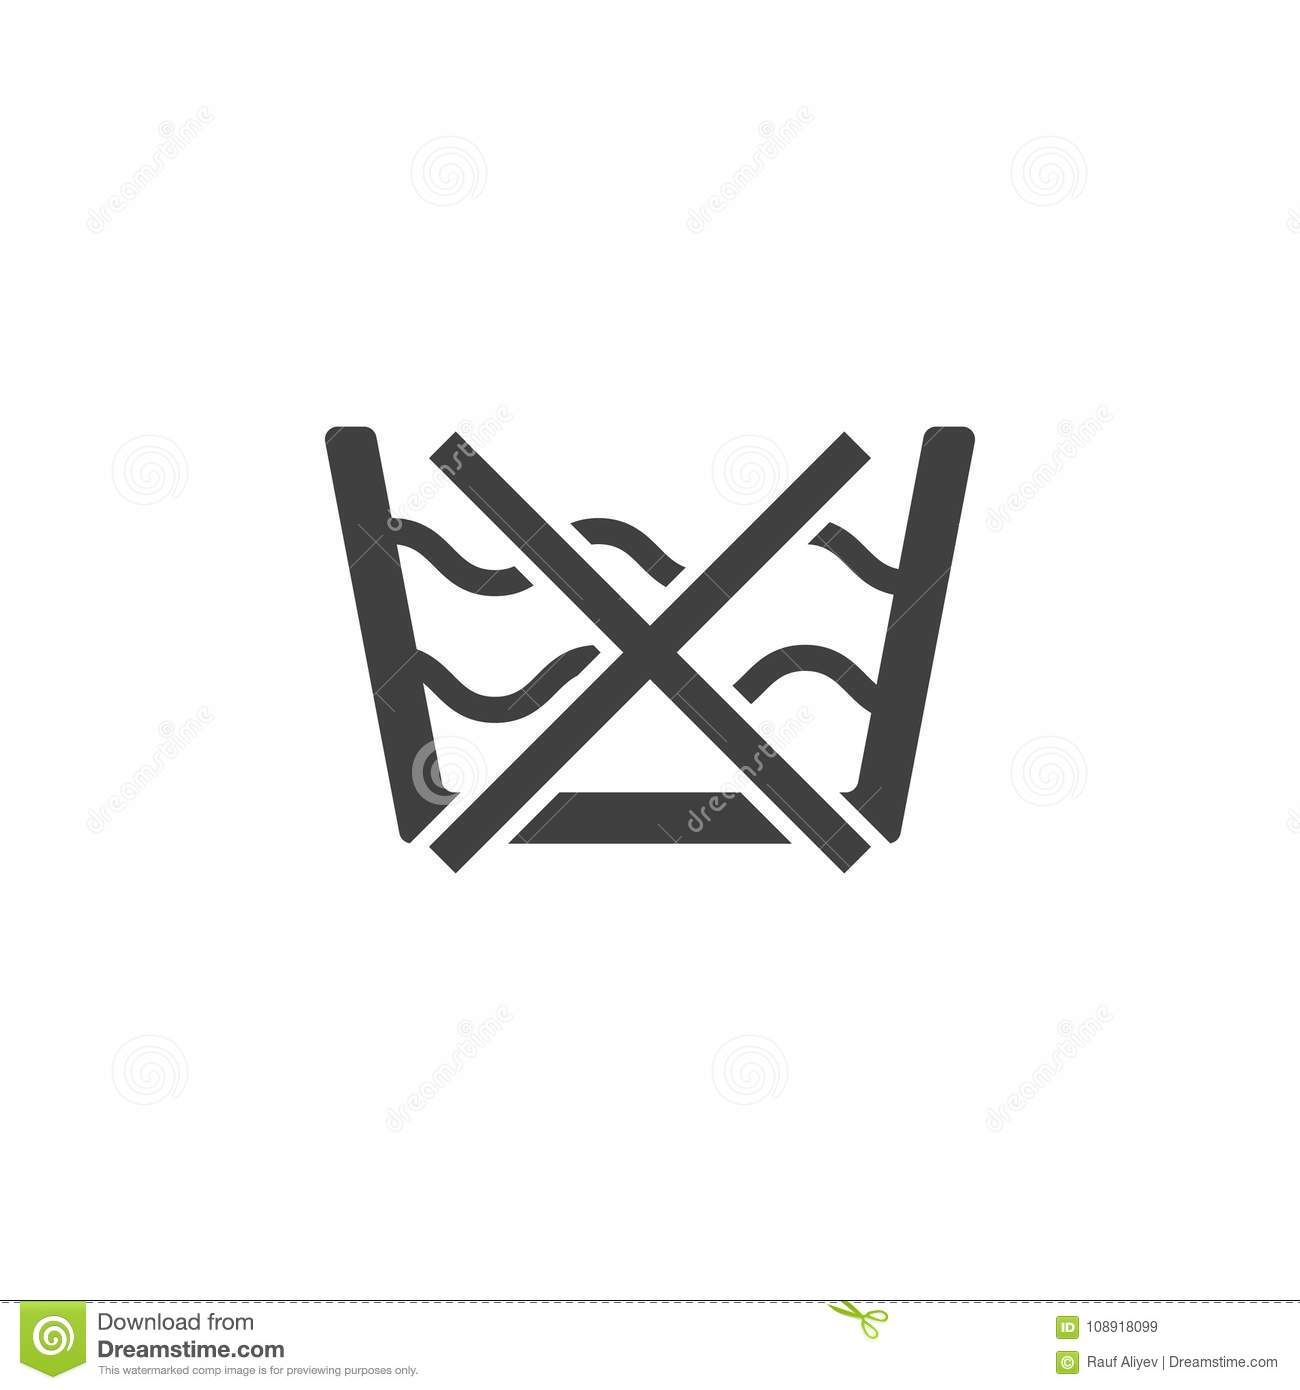 Do Not Washing Care Laundry Symbol Line Icon Stock Illustration